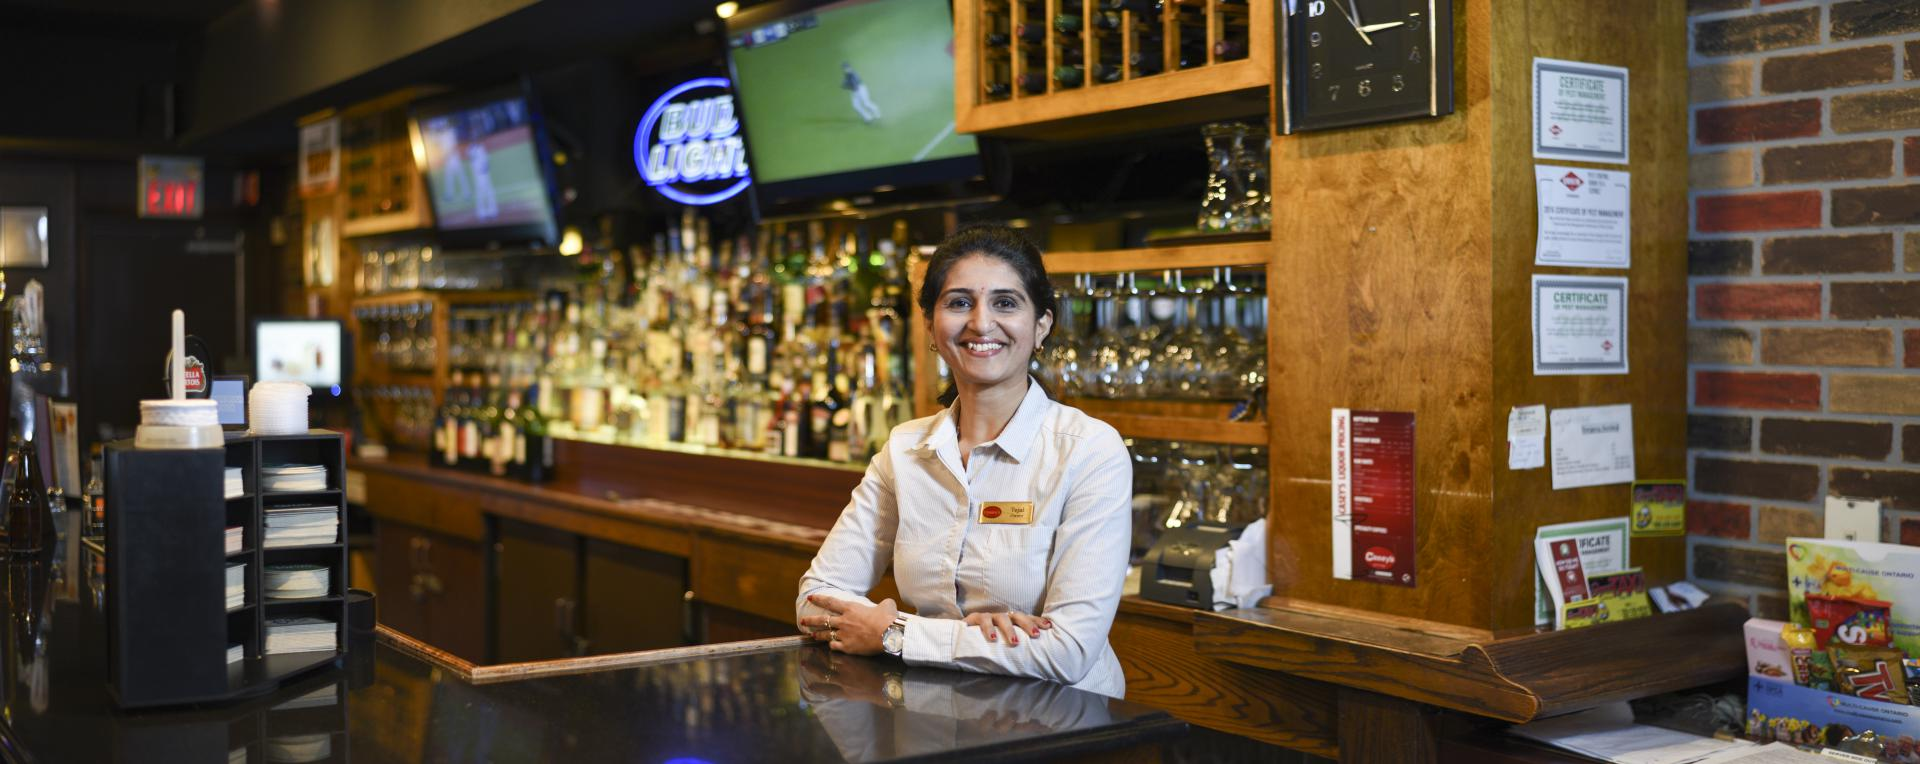 owner of the bar image